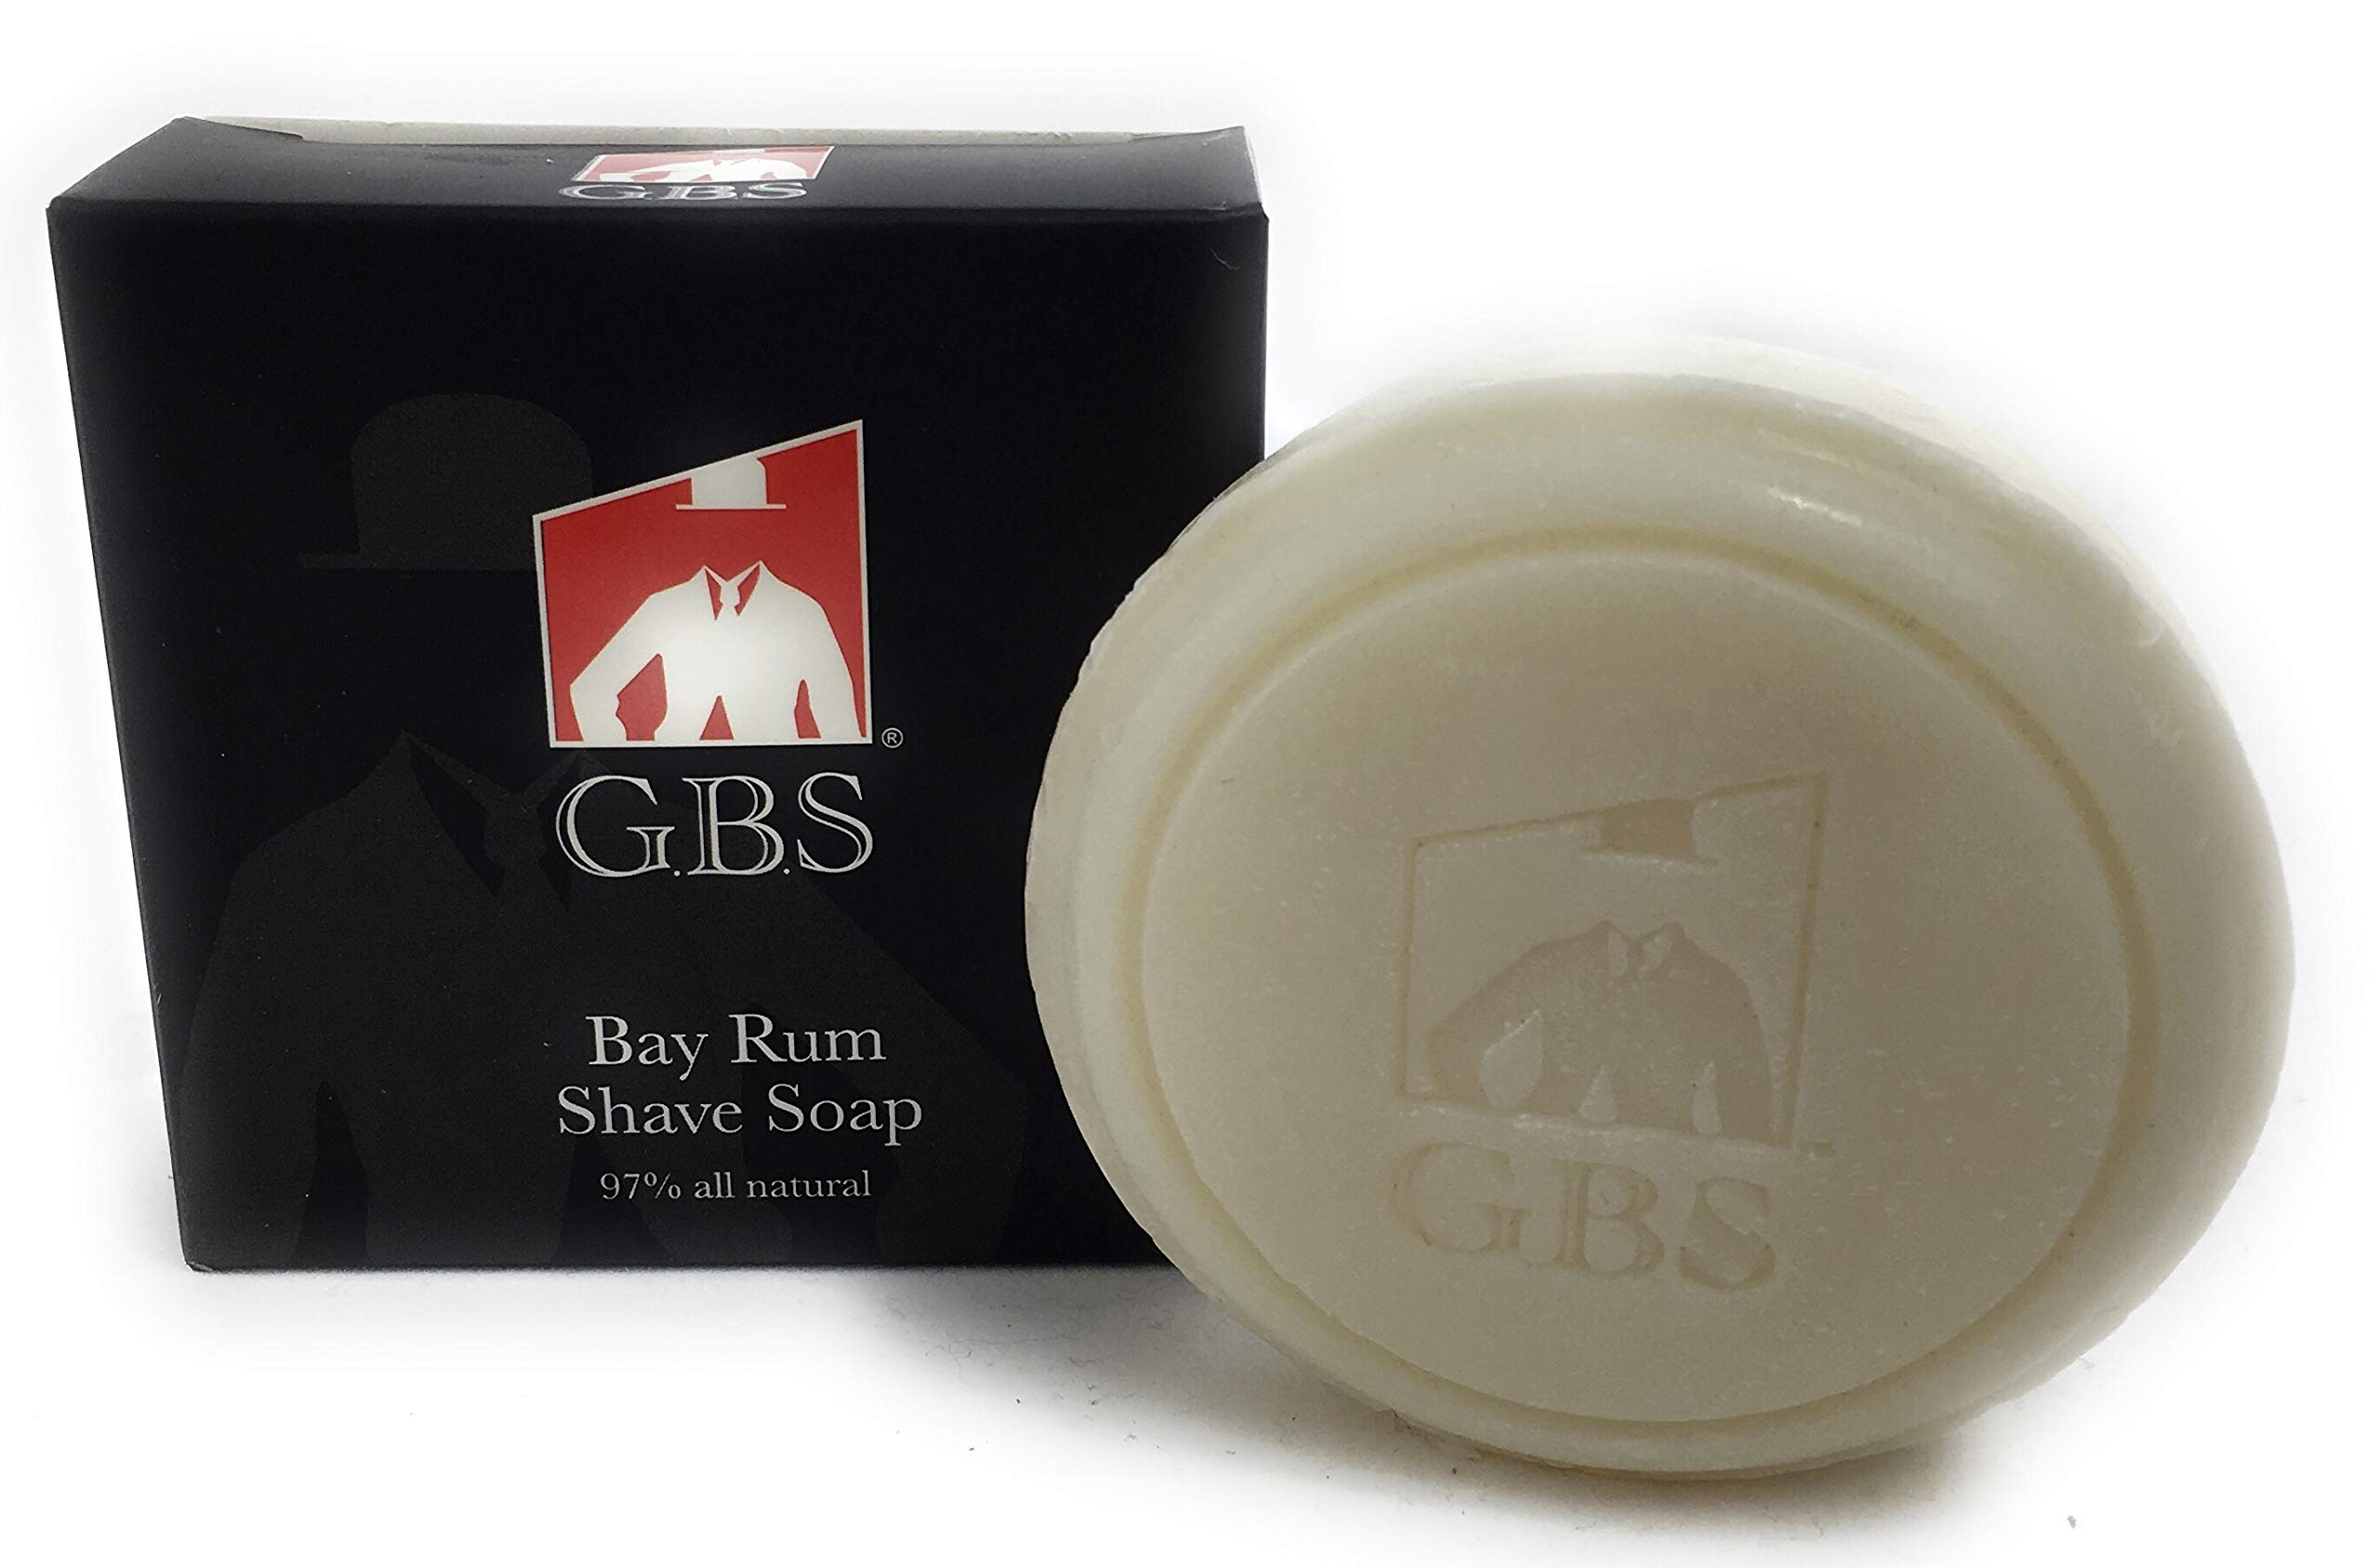 GBS 97% Bay Rum All-Natural Shave Soap Made with Shea Butter and Glycerin Made in The USA Creates a Rich Lather Foam for Ultimate Wet Shaving Experience